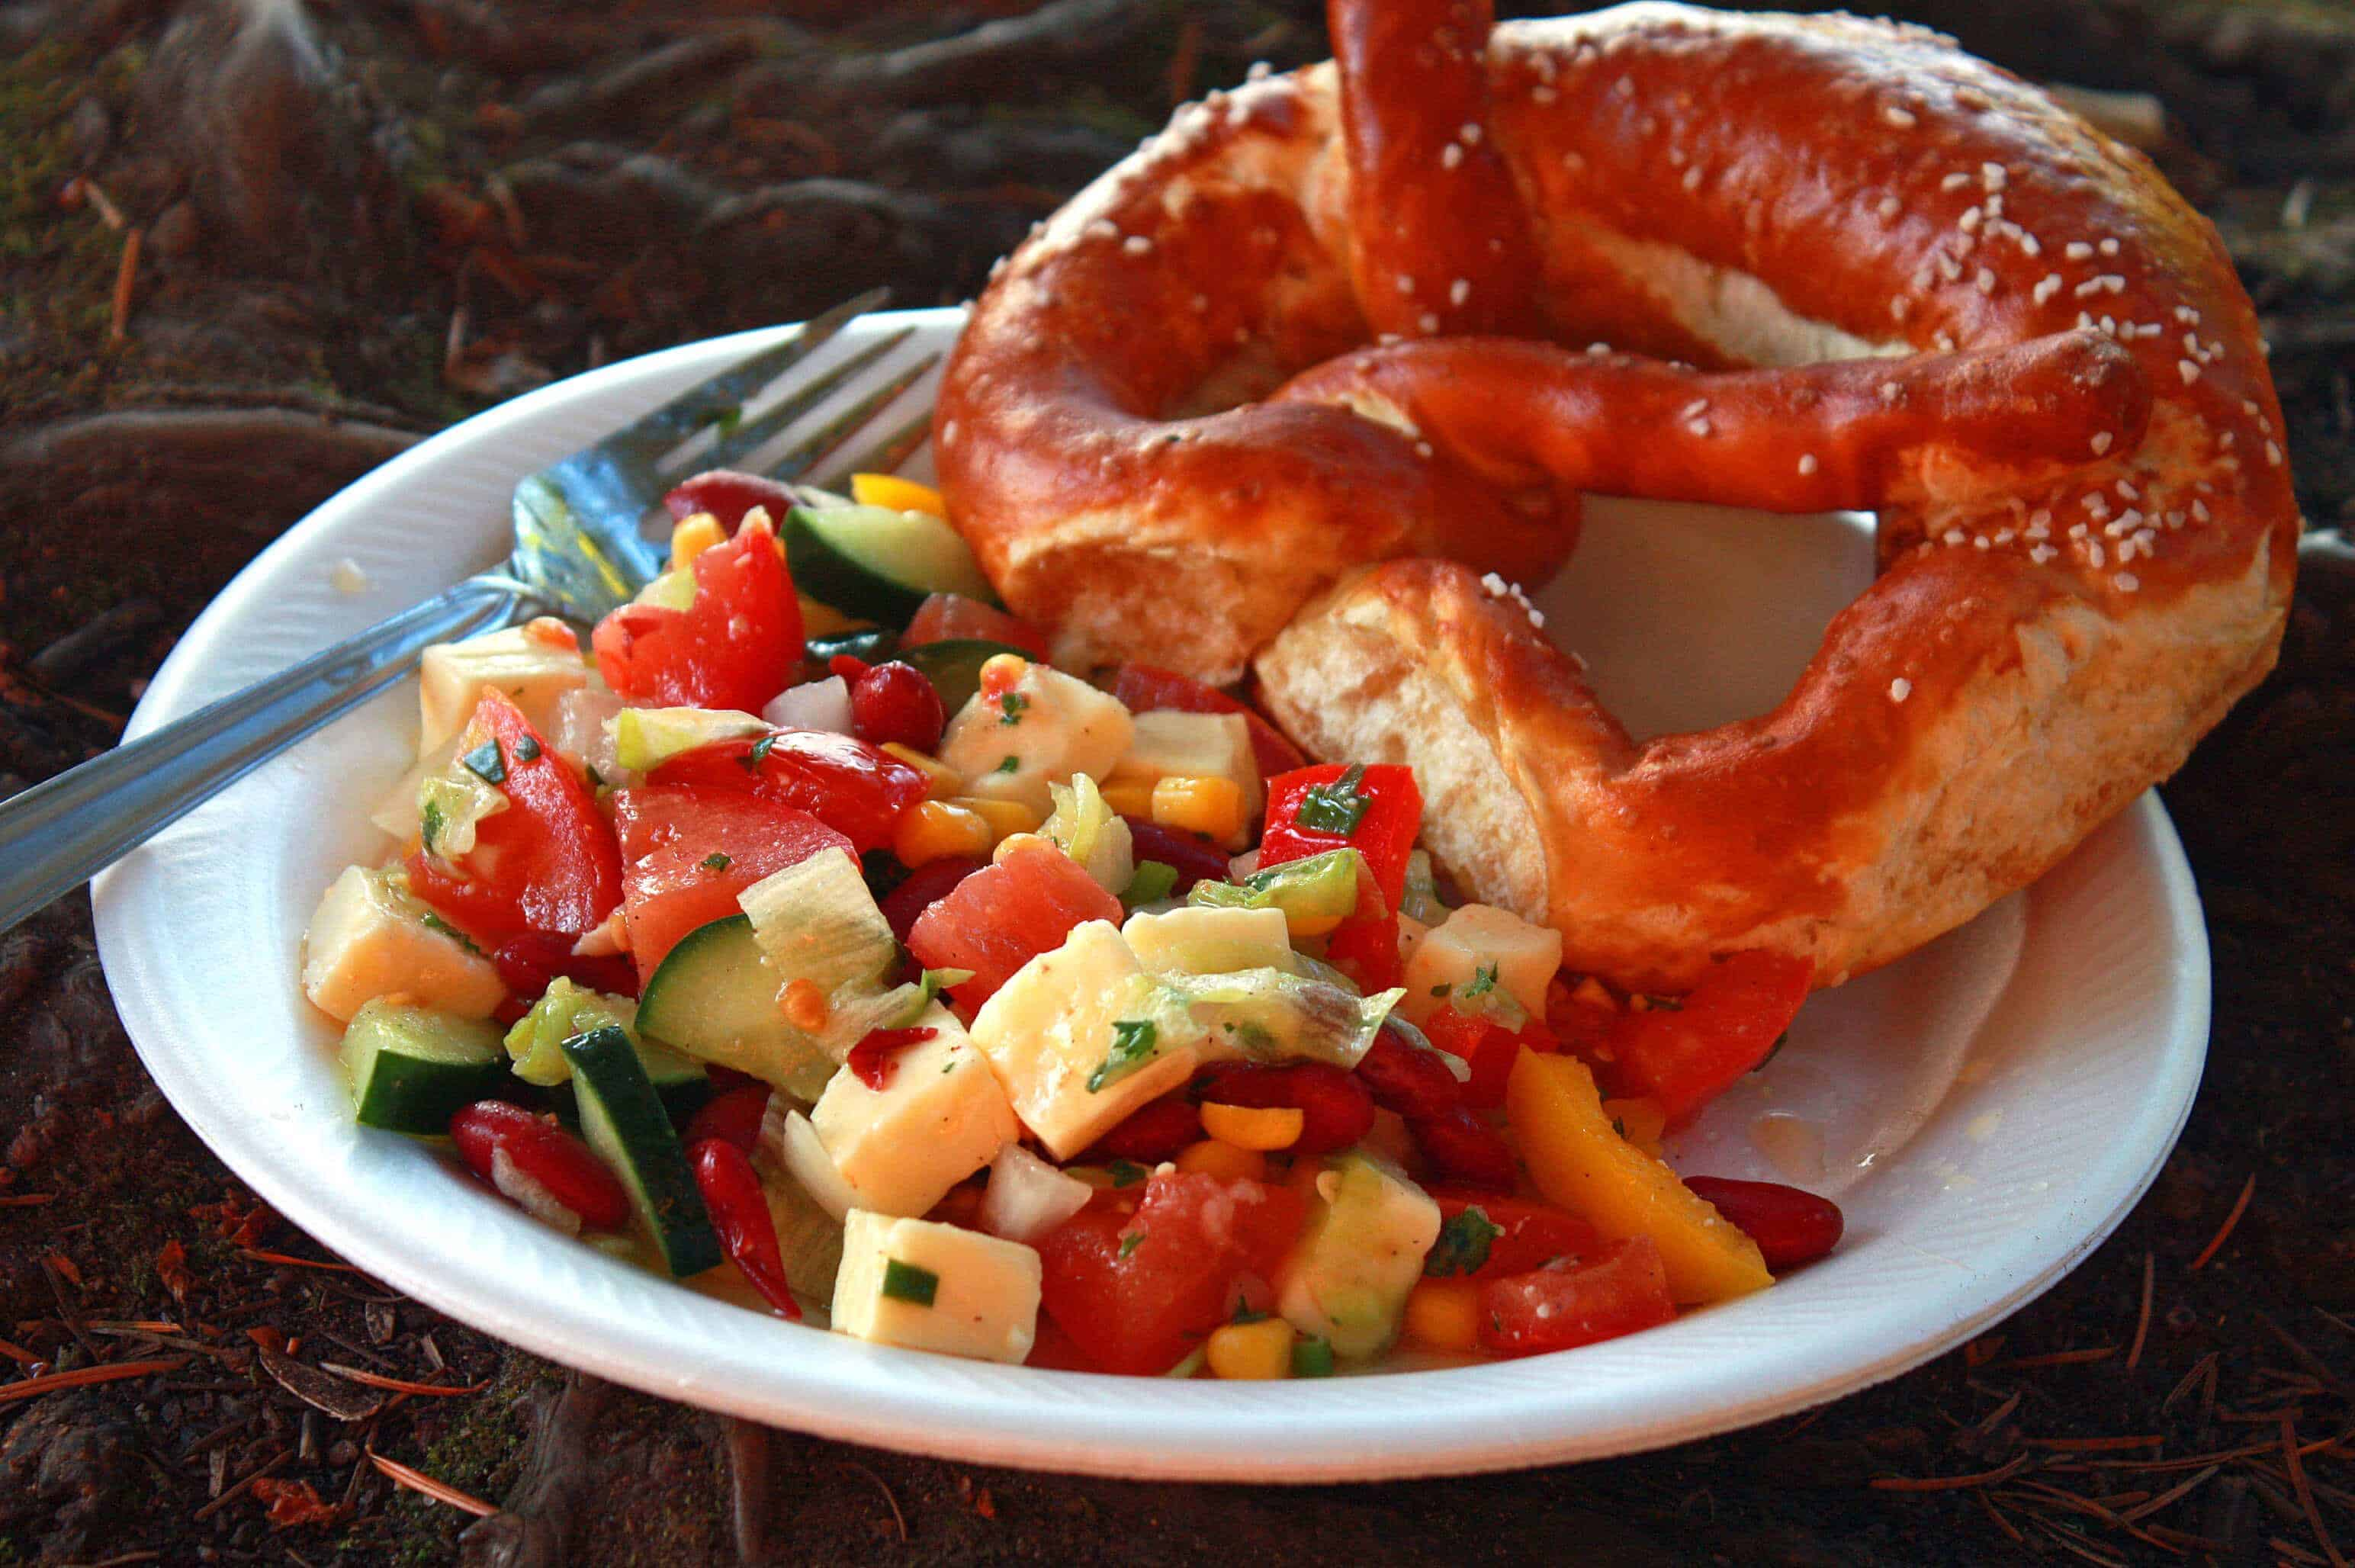 german picnic salad recipe cheese cucumbers tomatoes pepper kidney beans corn vinaigrette herbs